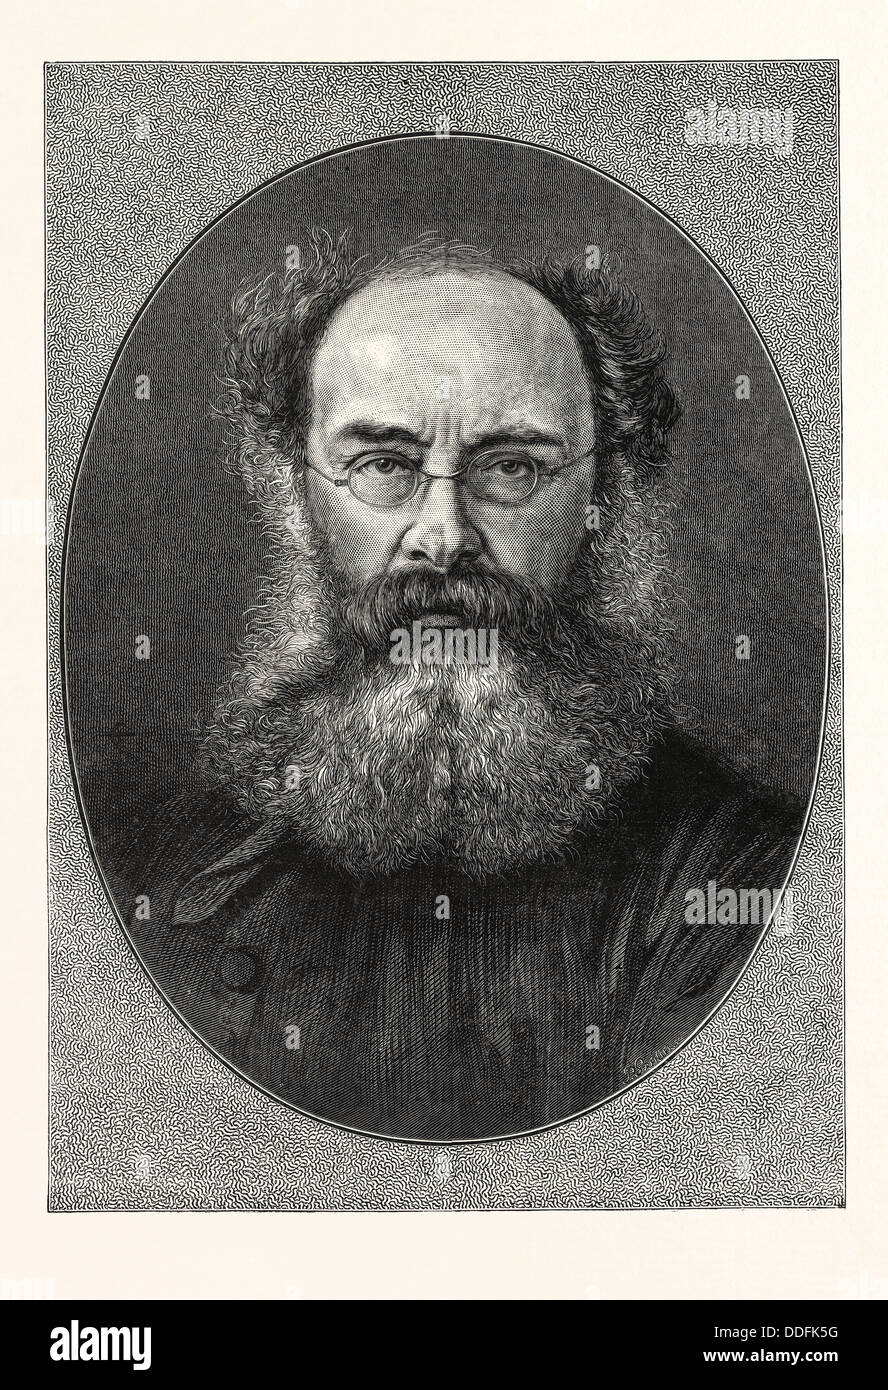 MR. ANTHONY TROLLOPE, 24 April 1815 – 6 December 1882, English novelist of the Victorian era, ENGRAVING 1876, UK, - Stock Image